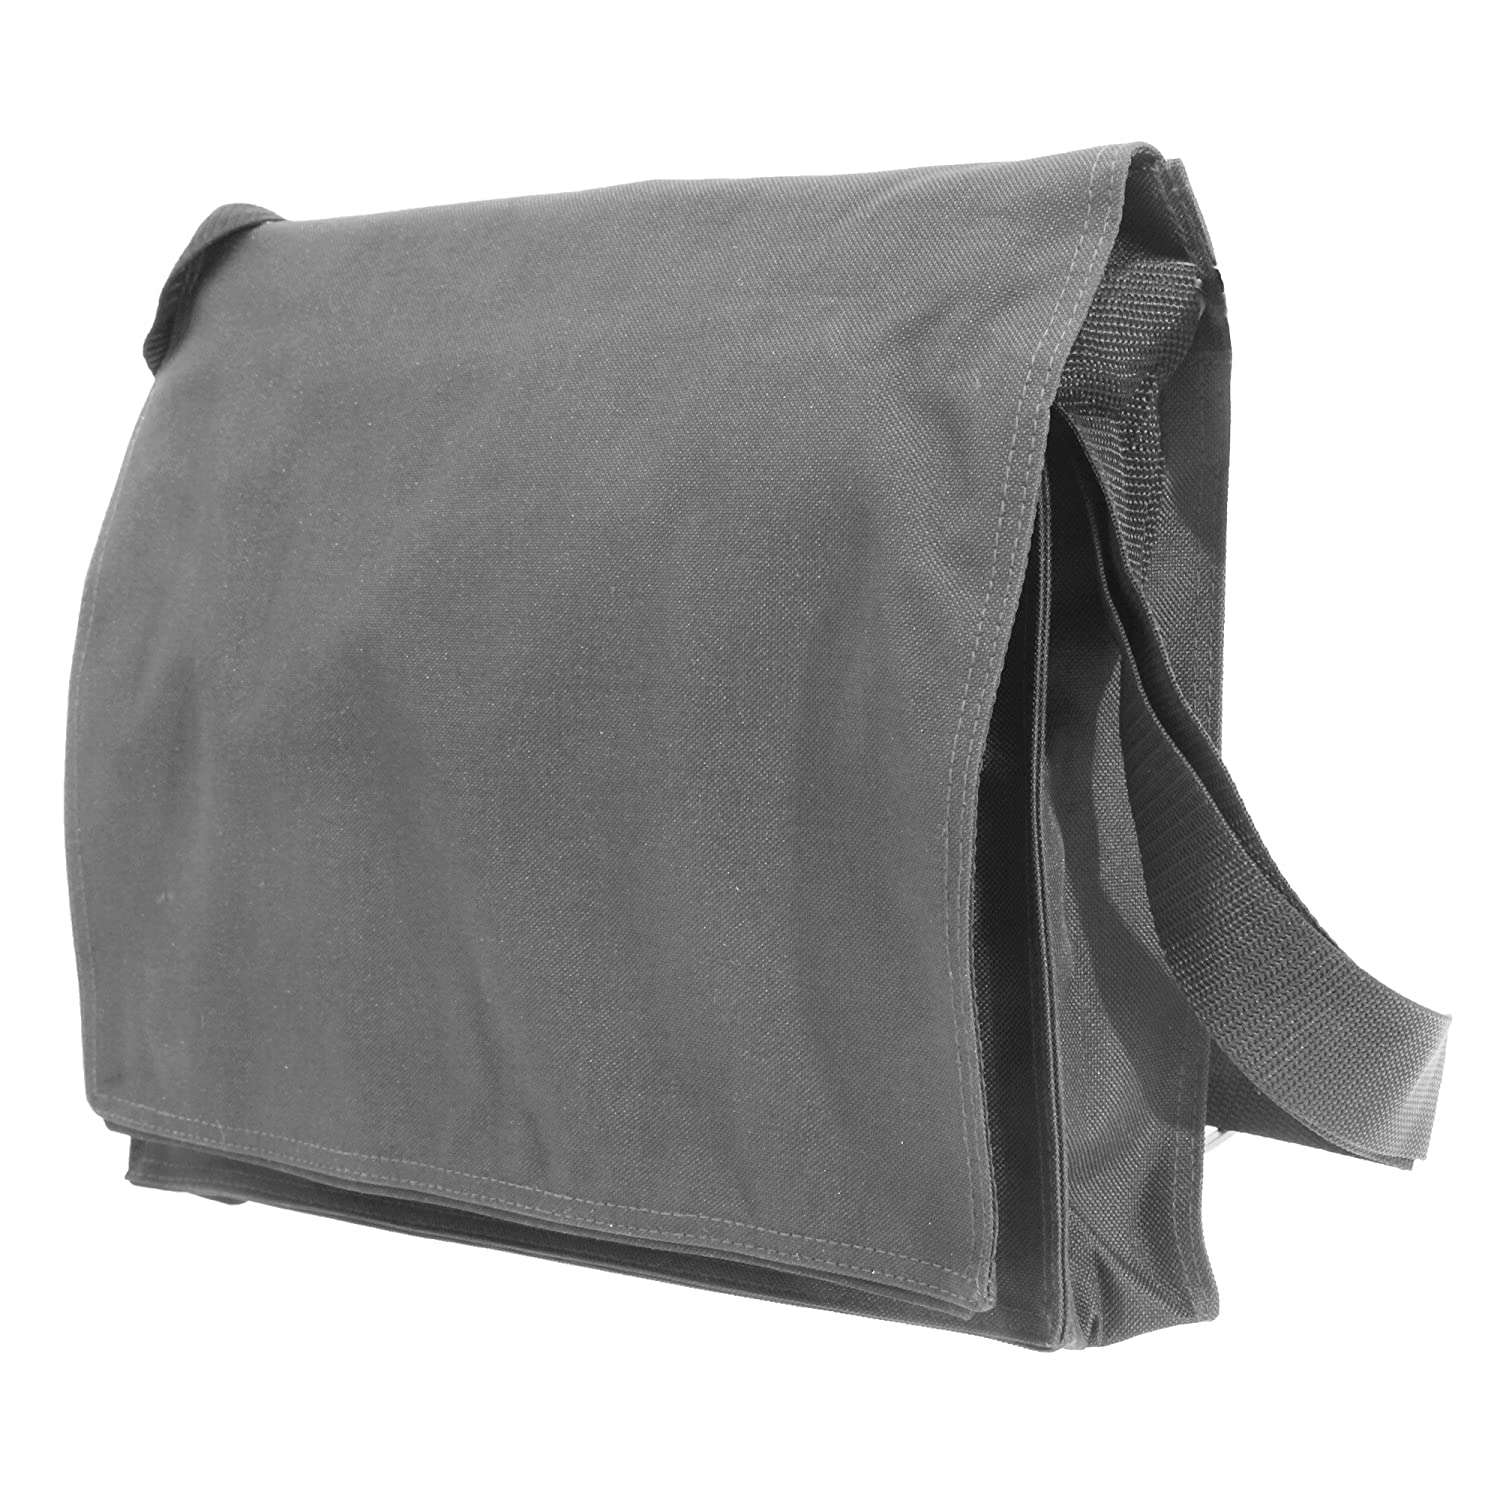 7 Liters Bagbase Conference Messenger Bag